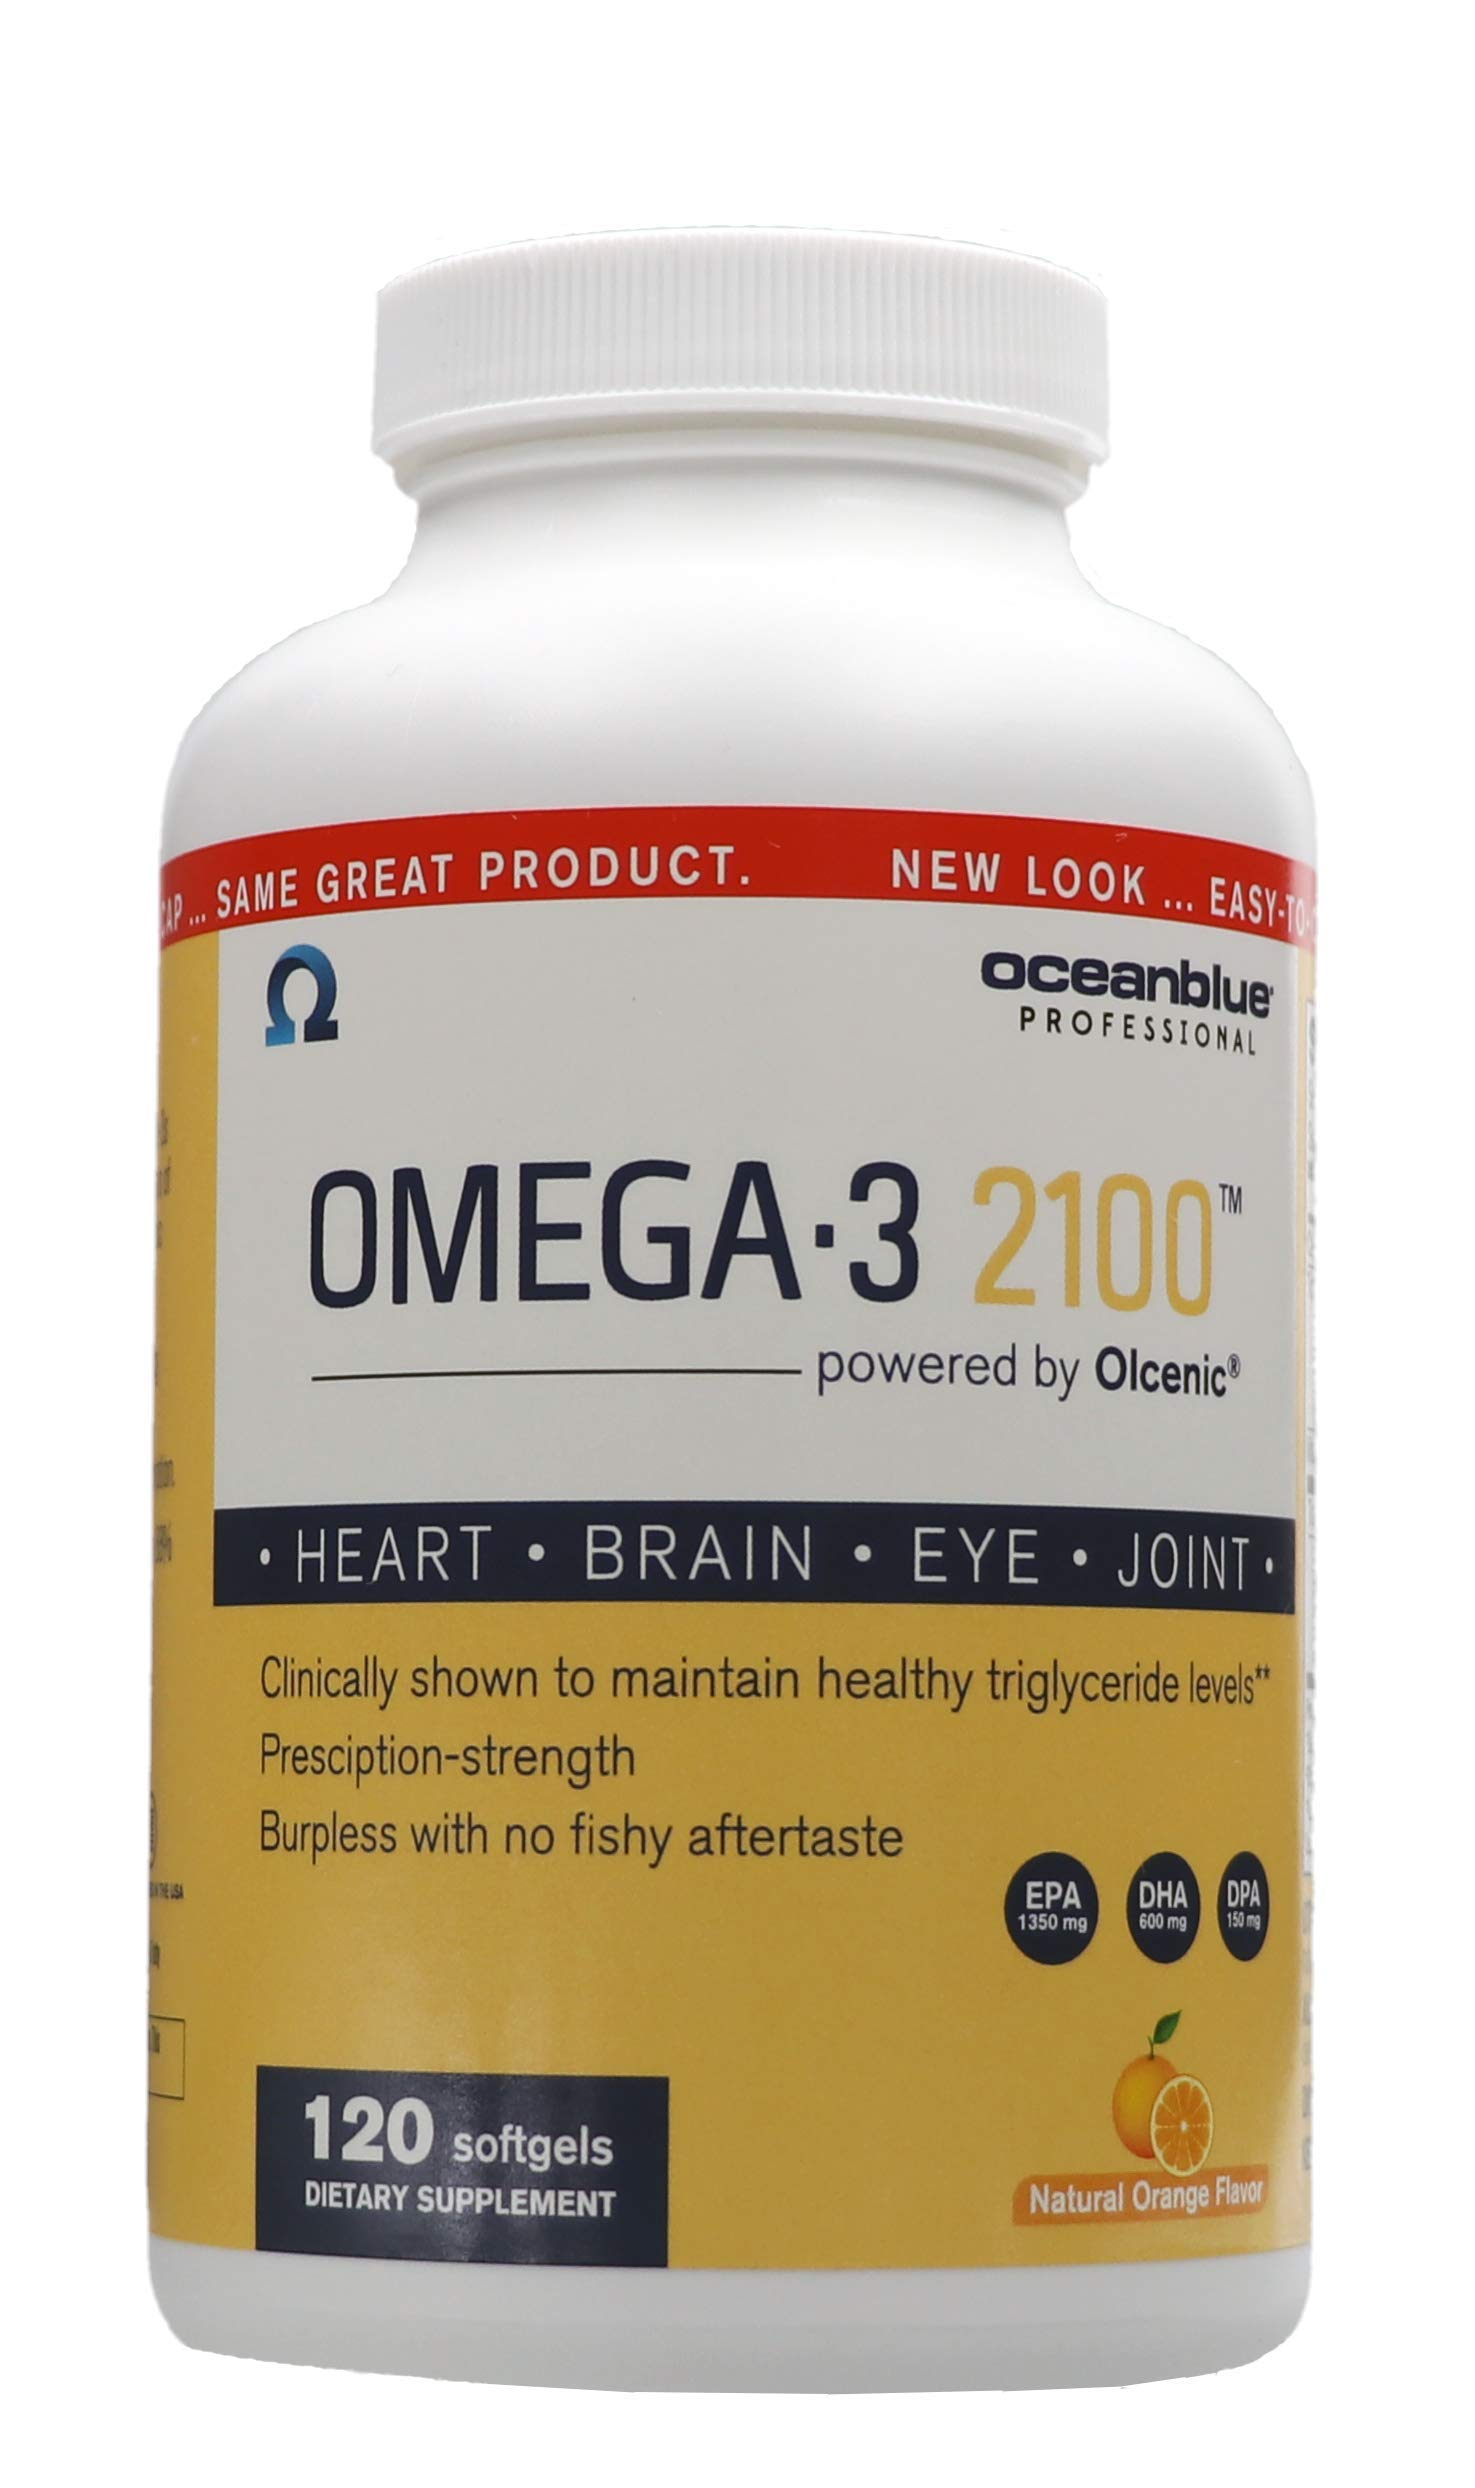 Ocean Blue Omega 3 2100 - Olcenic Blend - 120 Count - Natural Orange Flavor - no Fishy Aftertaste - Heart Health - Cholesterol - Eye and Brain Support - Natural Flavor - Indigestion or Burps